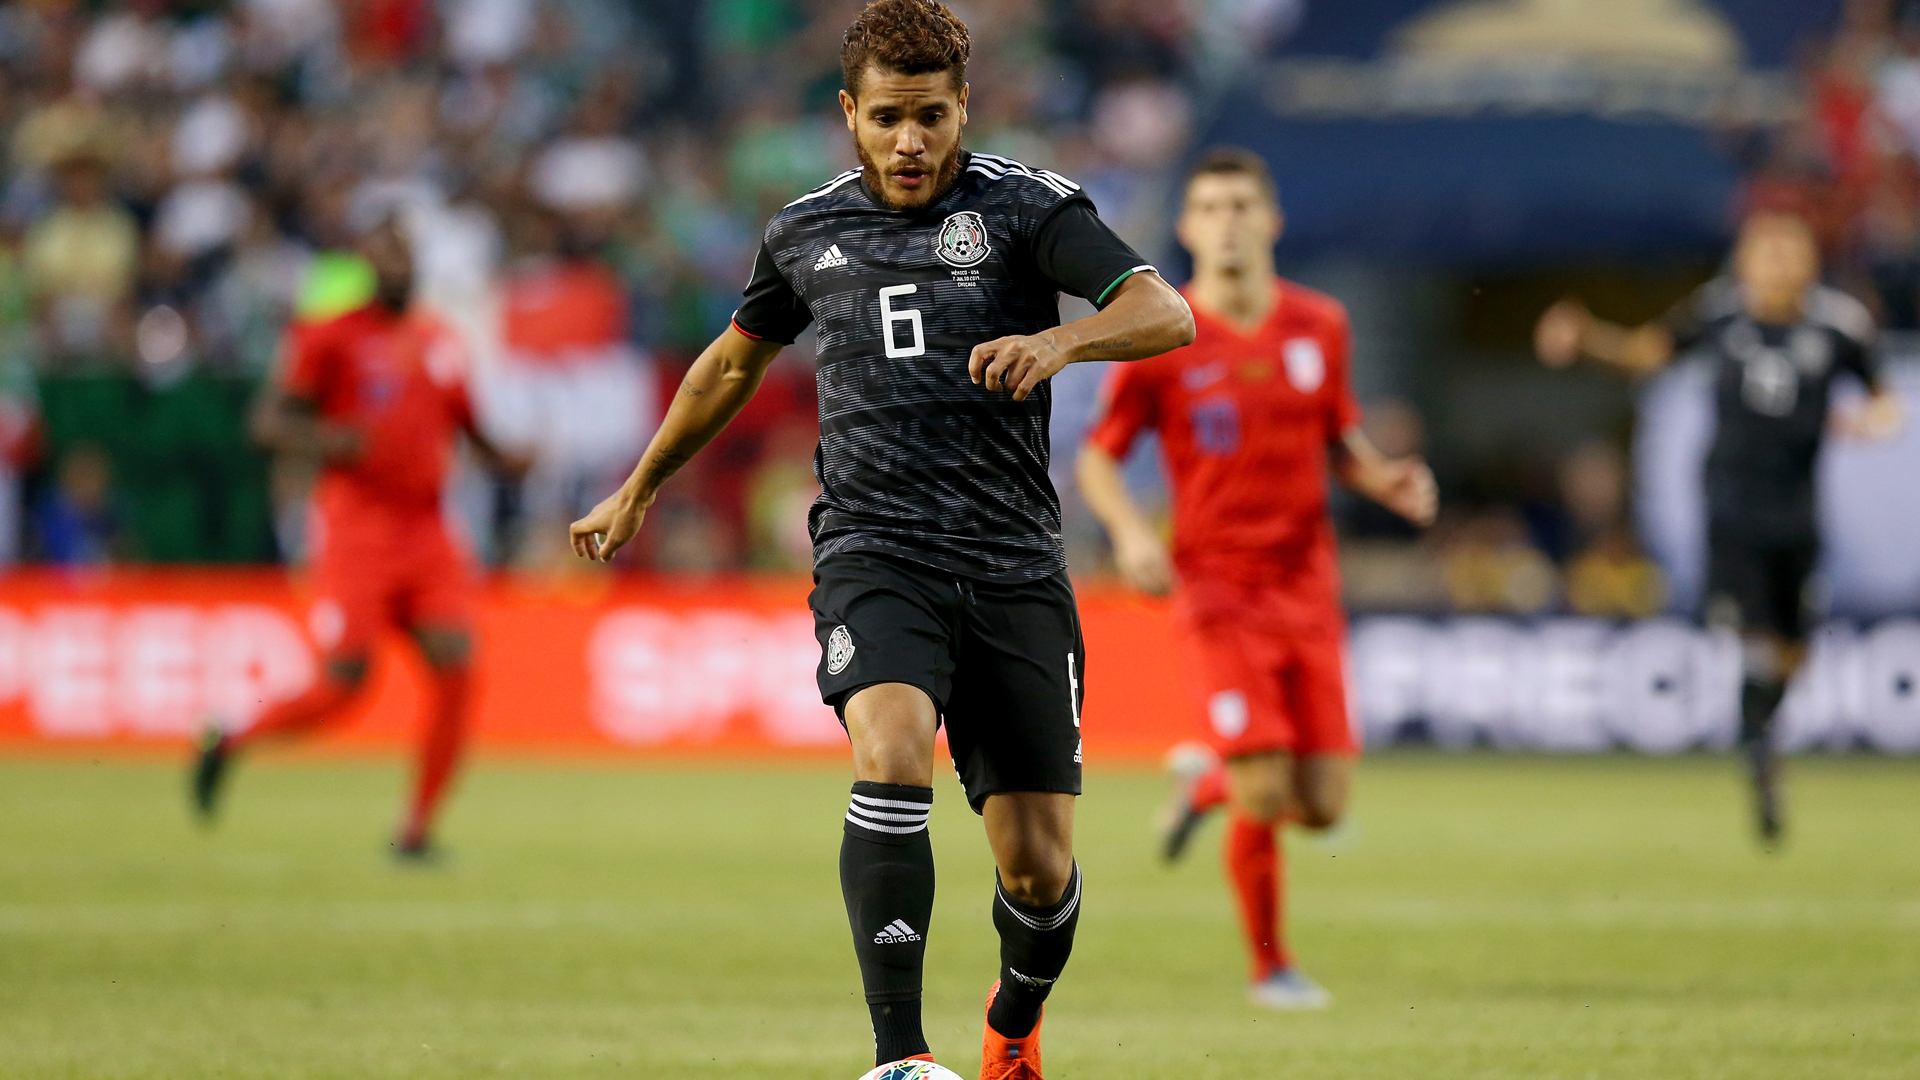 Mexico 1 United States 0: Dos Santos goal secures Gold Cup title